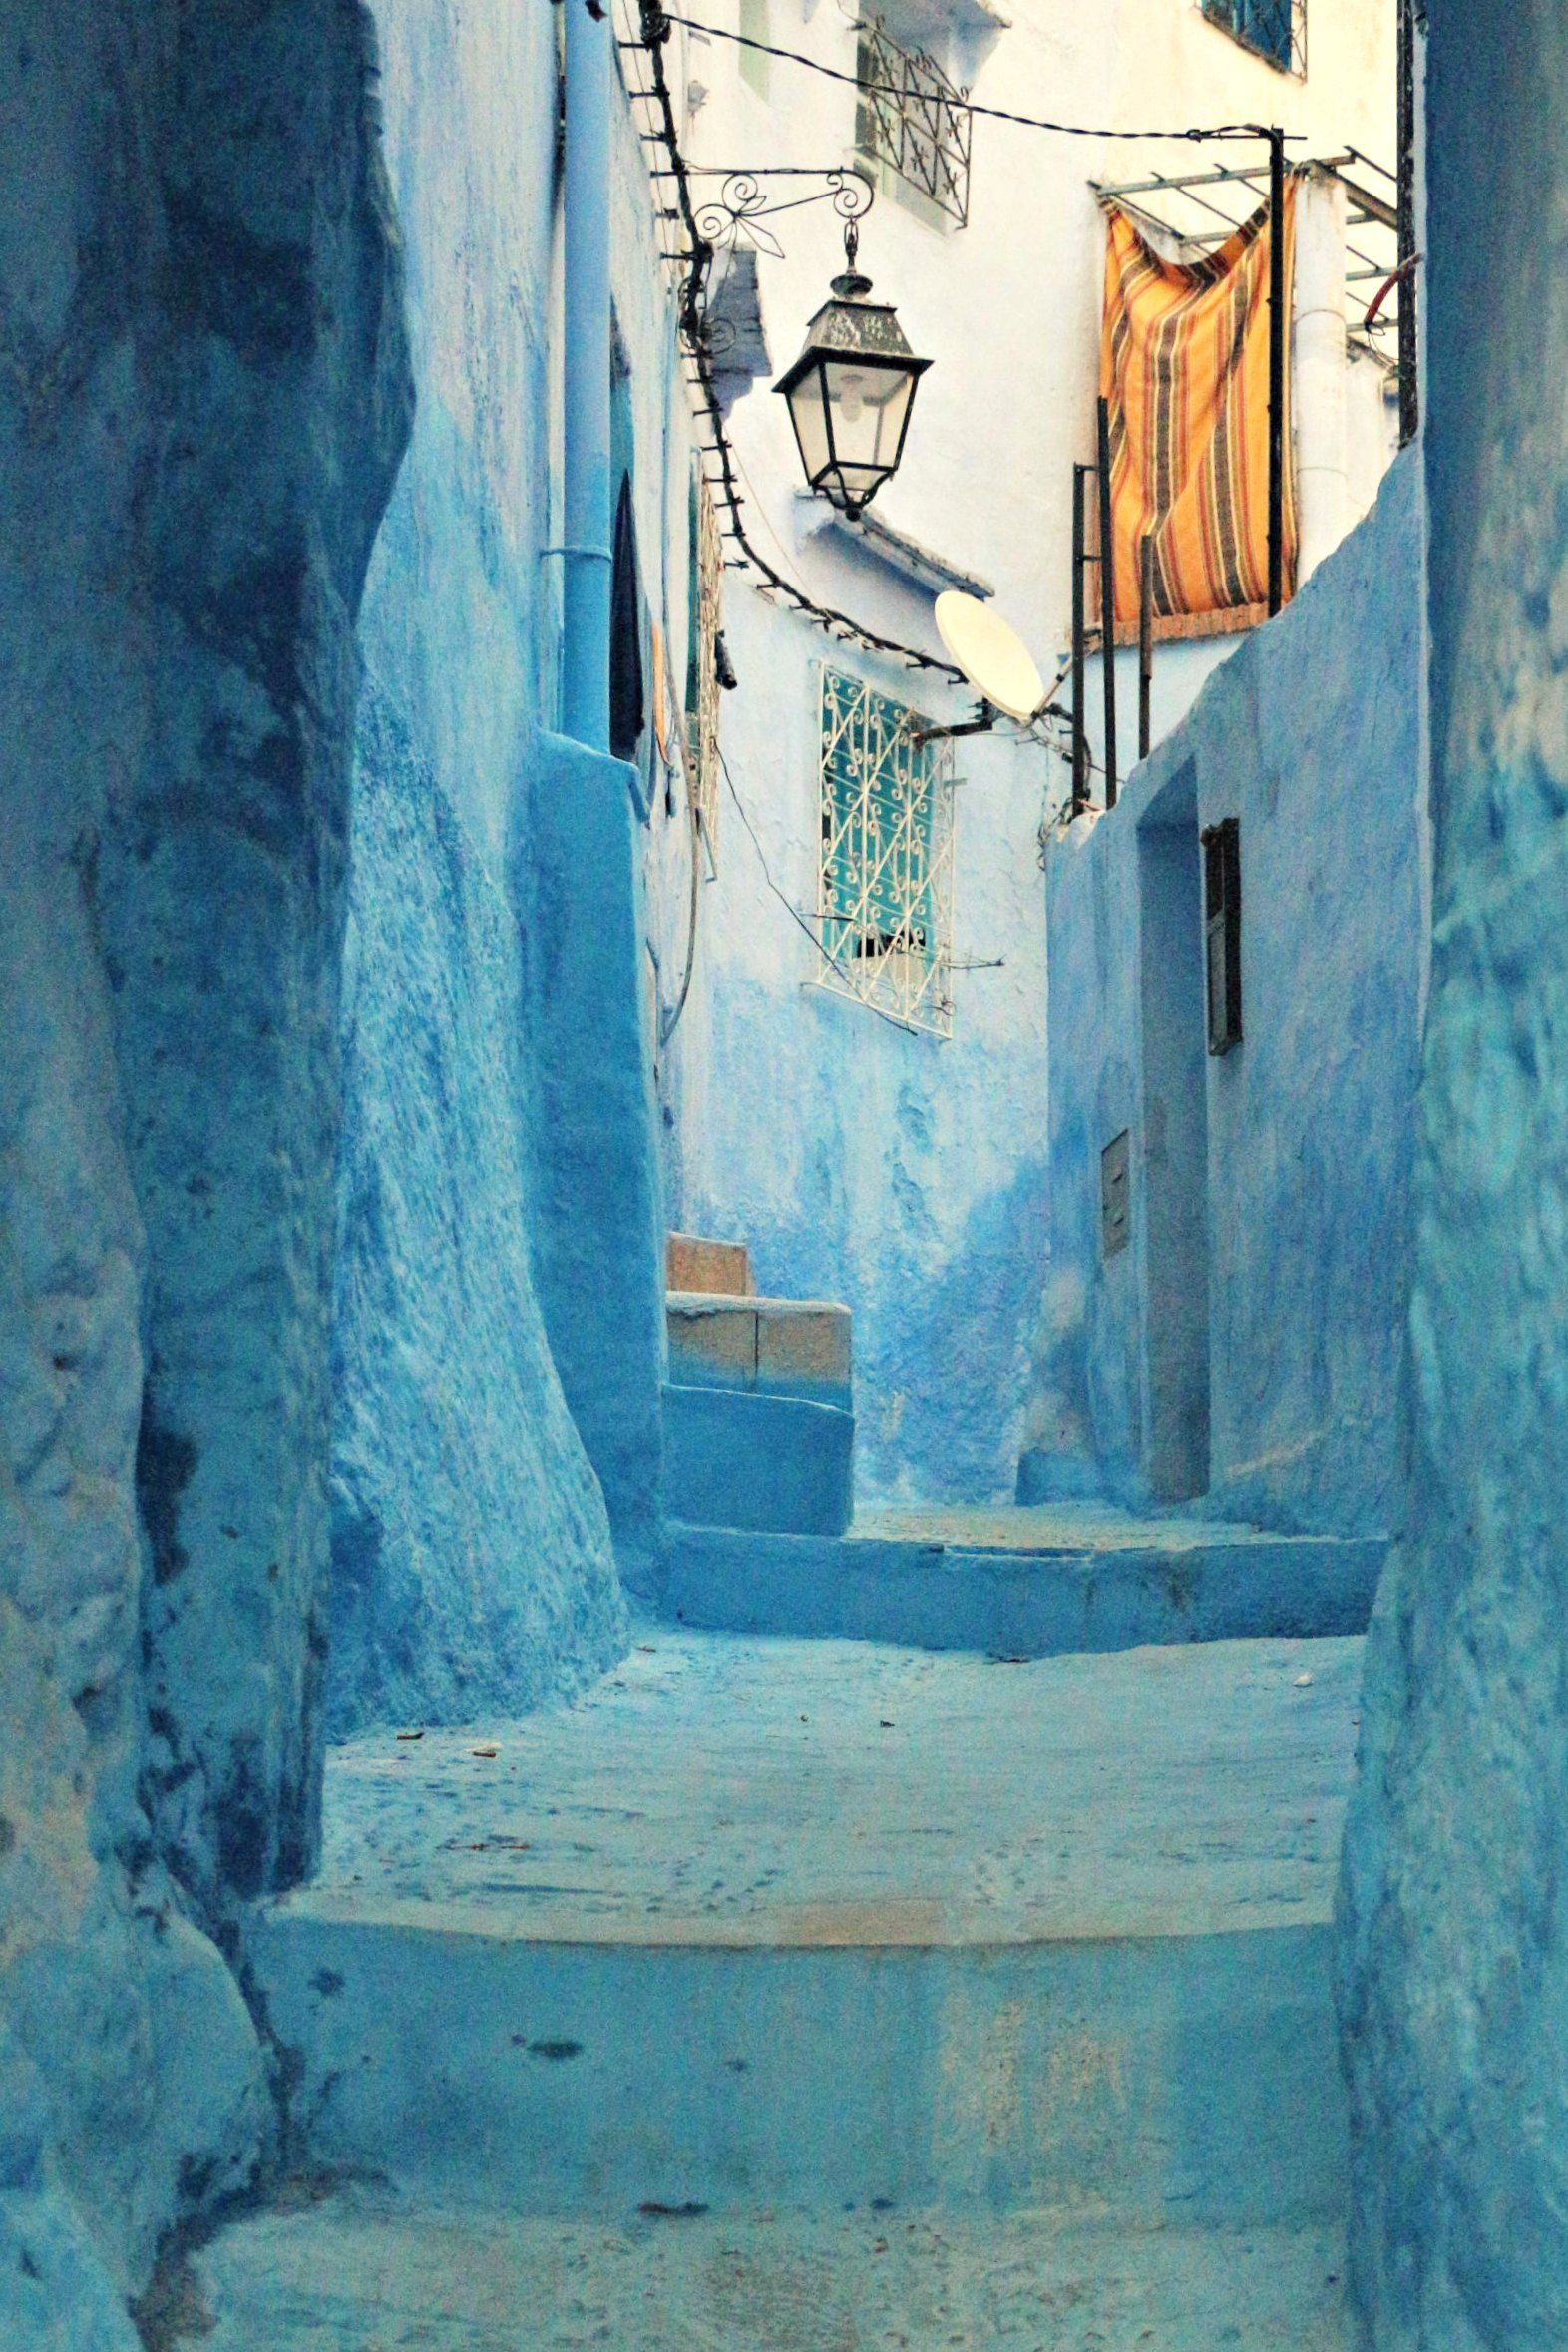 Chefchaouen Reisebericht Morocco Wanderlust And Beautiful Places - Old town morocco entirely blue